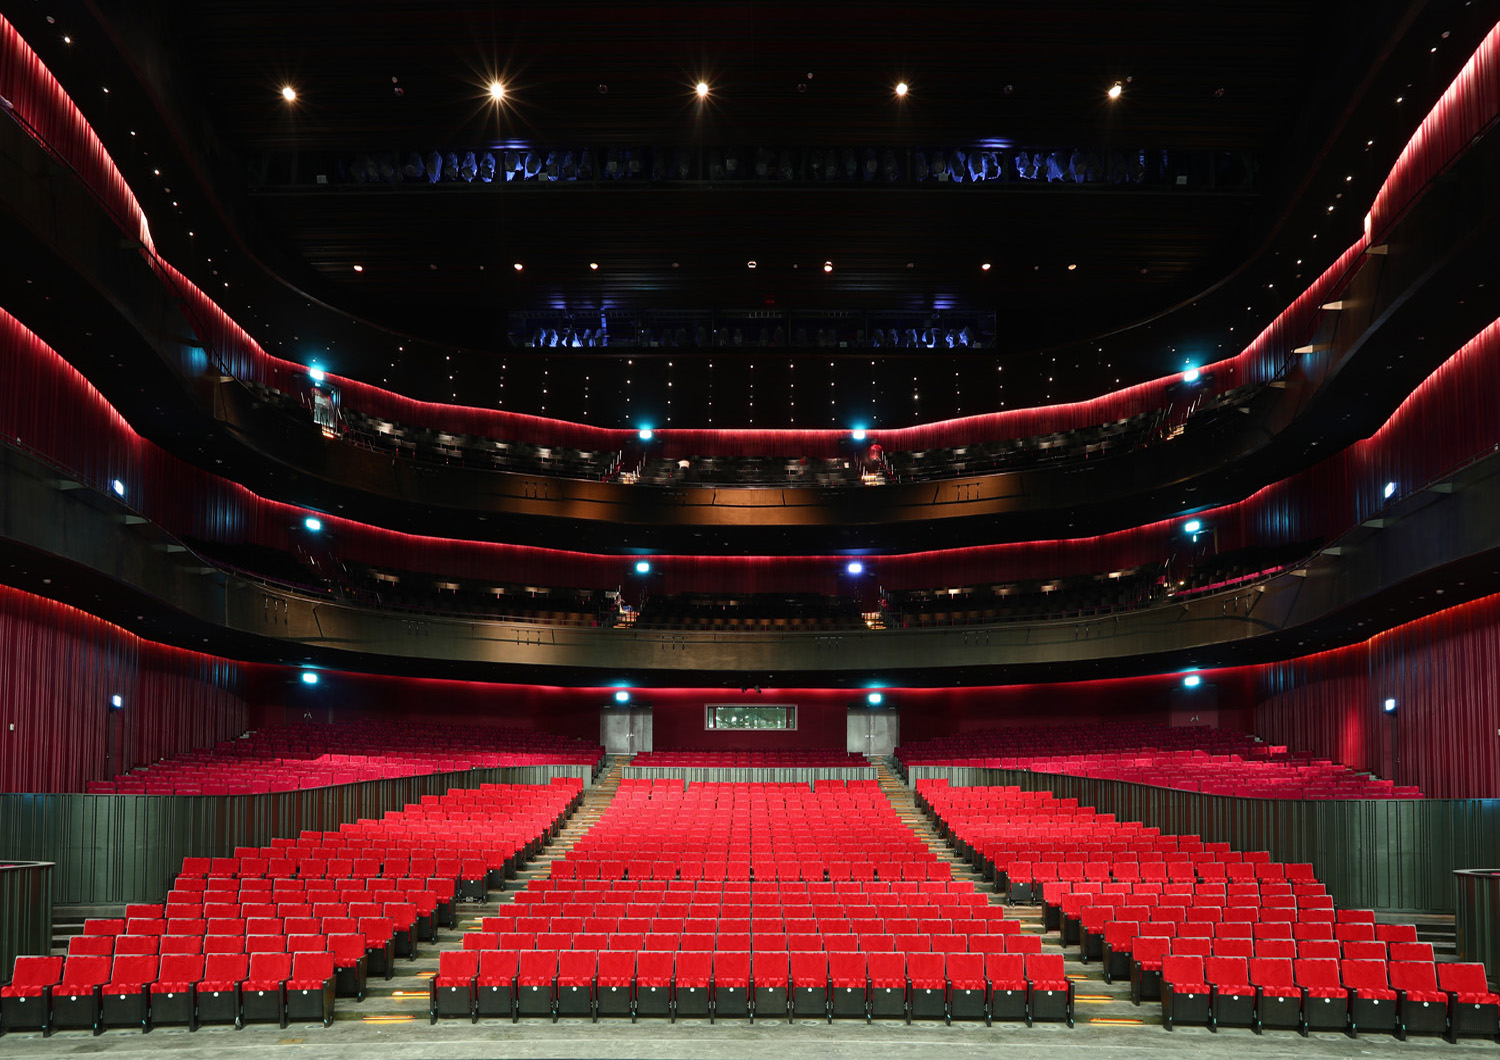 The 2236-seat Opera House is arranged in the form of a horseshoe with three circled balconies. This theatre is suitable for Western opera, with an orchestra of over seventy musicians. National Kaohsiung Center for the Arts (Weiwuying)